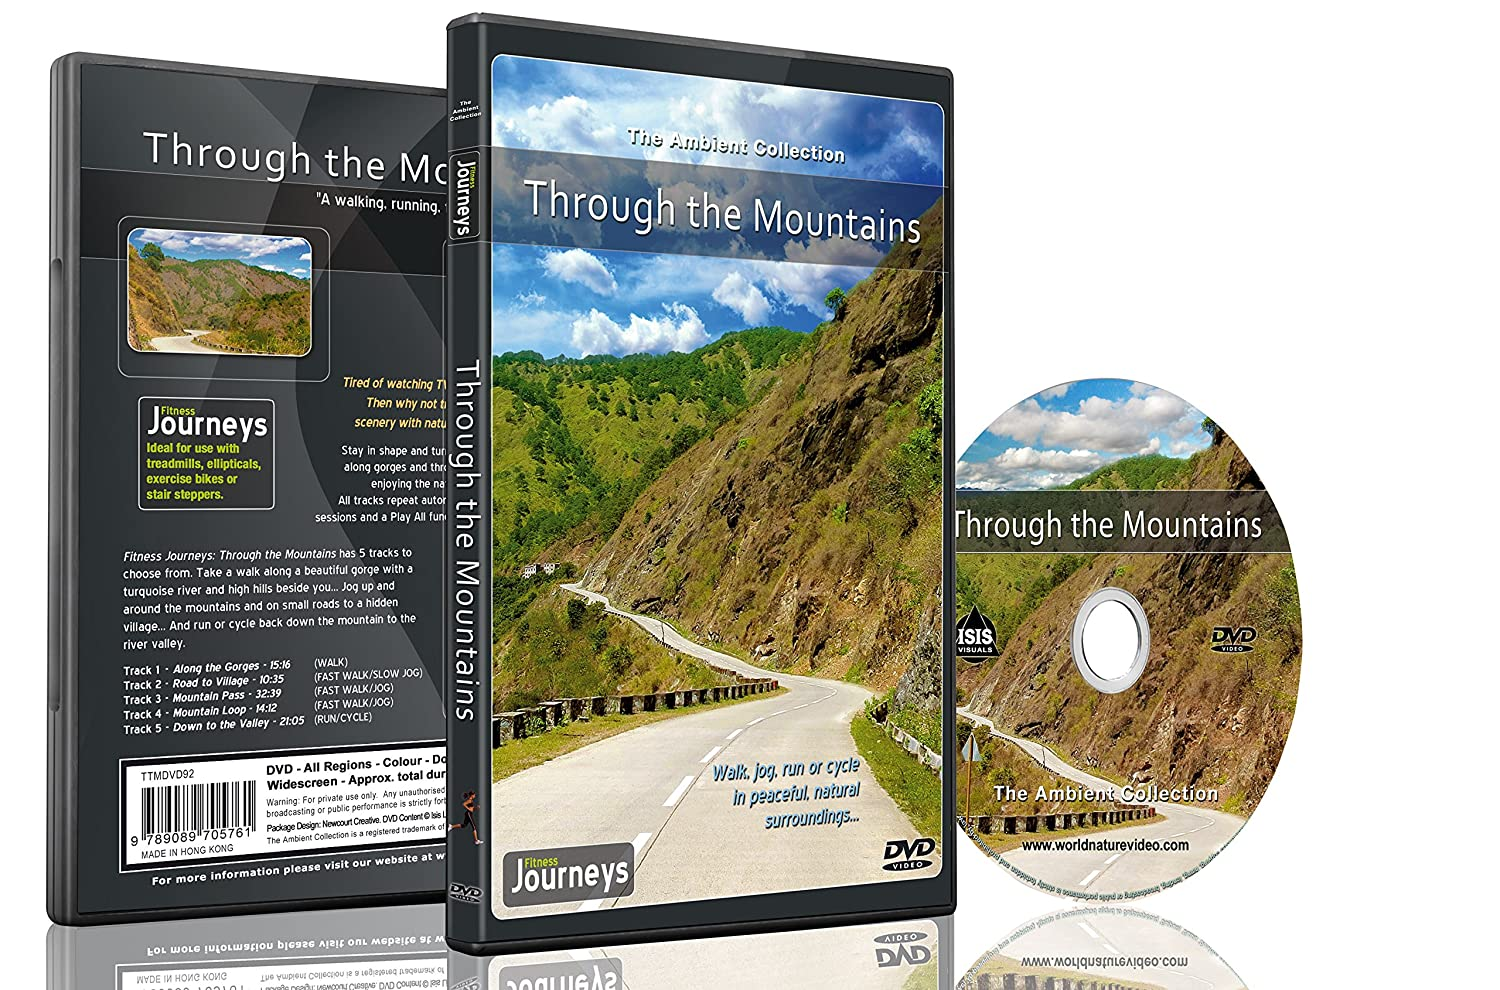 Fitness Journeys - Through the Mountains , for indoor walking, treadmill and cycling workouts The Ambient Collection Tony Helsloot